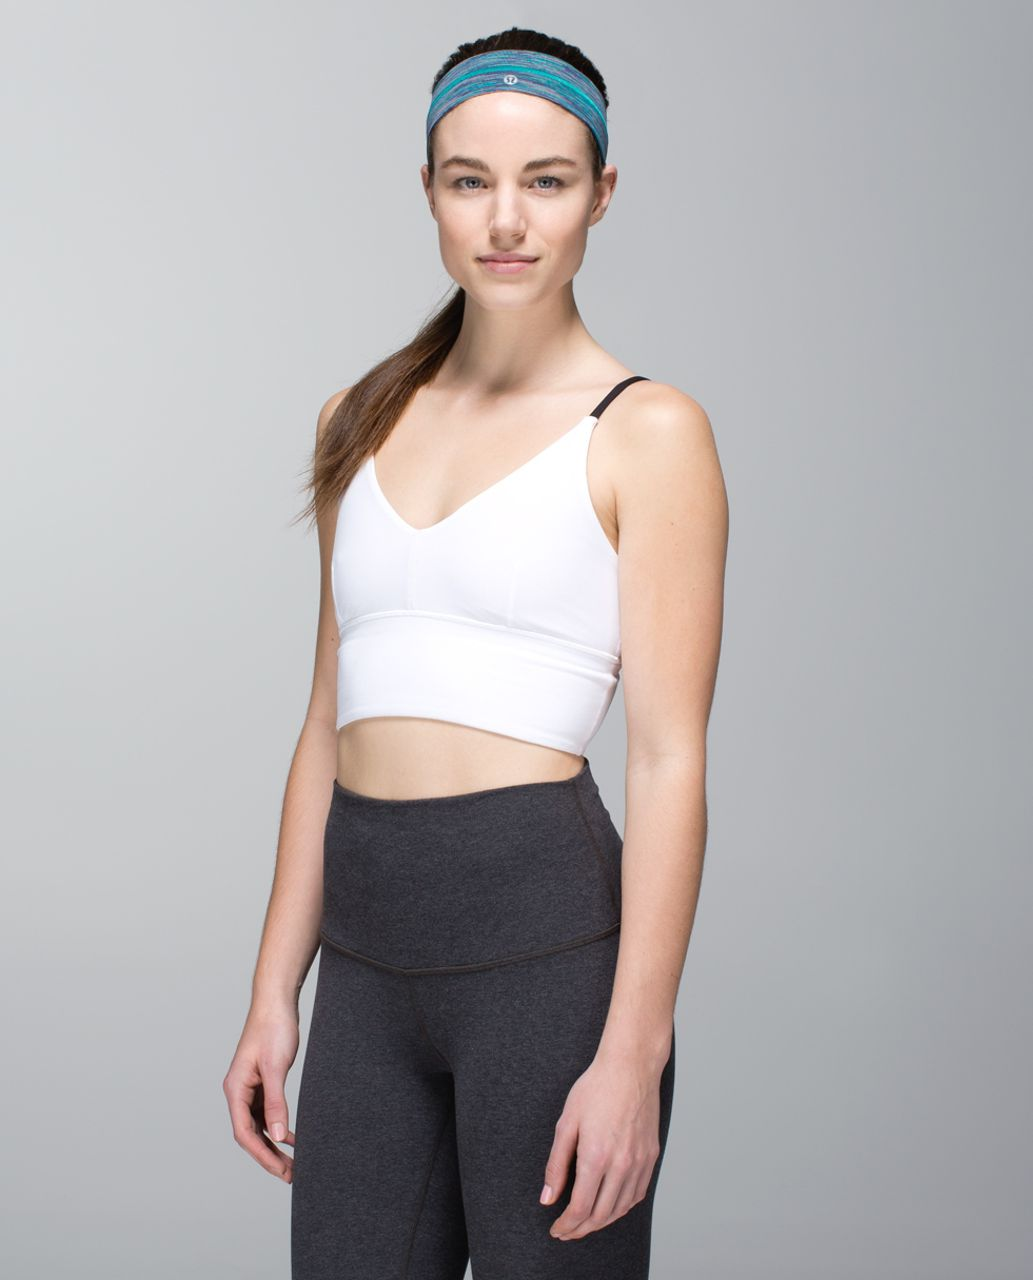 Lululemon Fly Away Tamer Headband - Wee Are From Space Blue Tropics